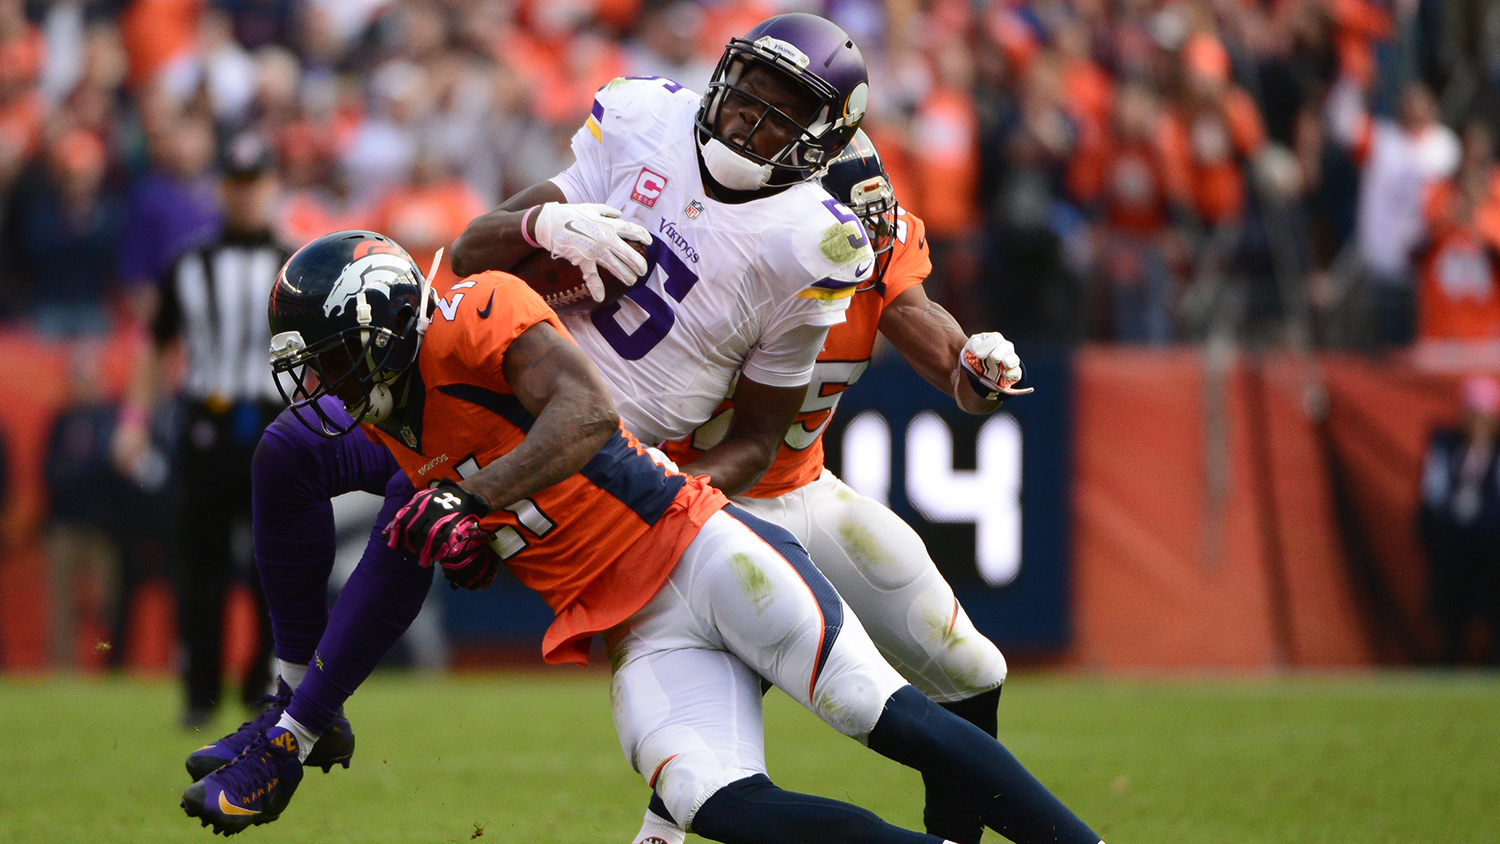 Minnesota Vikings vs. Denver Broncos